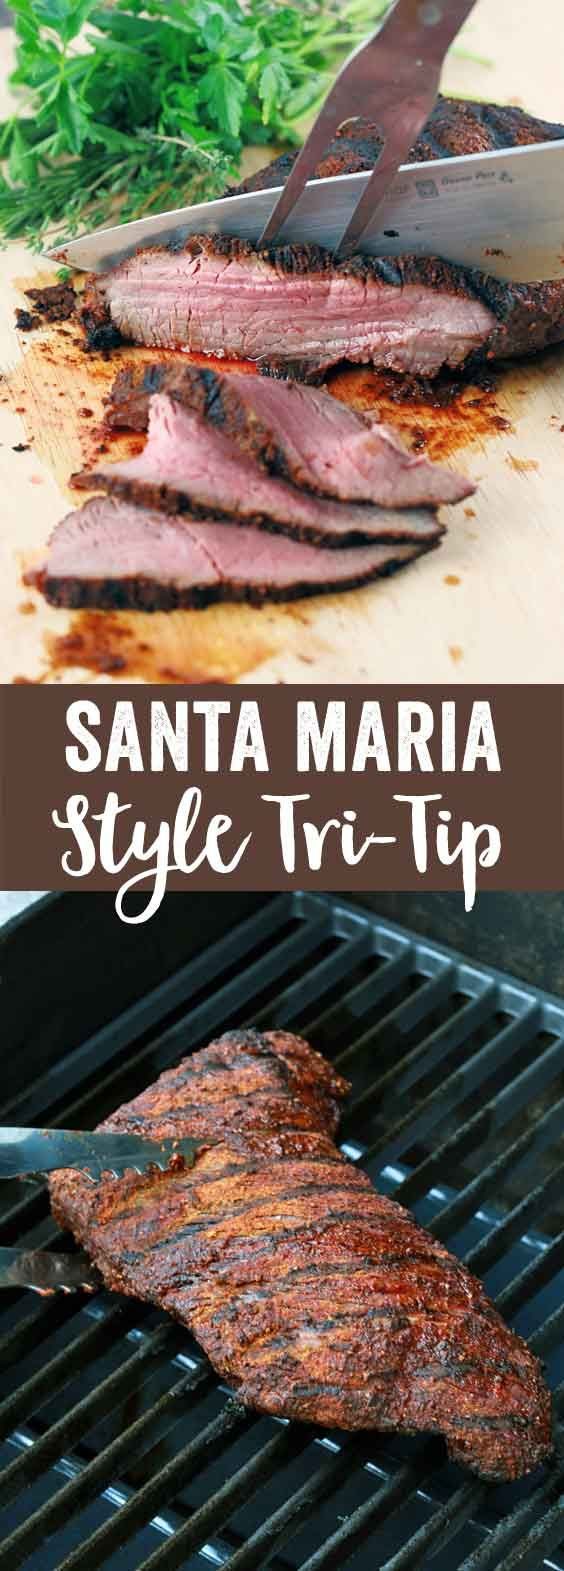 Santa Maria Style Tri-Tip - A quick and delicious recipe perfect for barbecue season! A smoky, sweet and spicy spice rub makes this cut of beef more flavorful. | jessicagavin.com via @foodiegavin